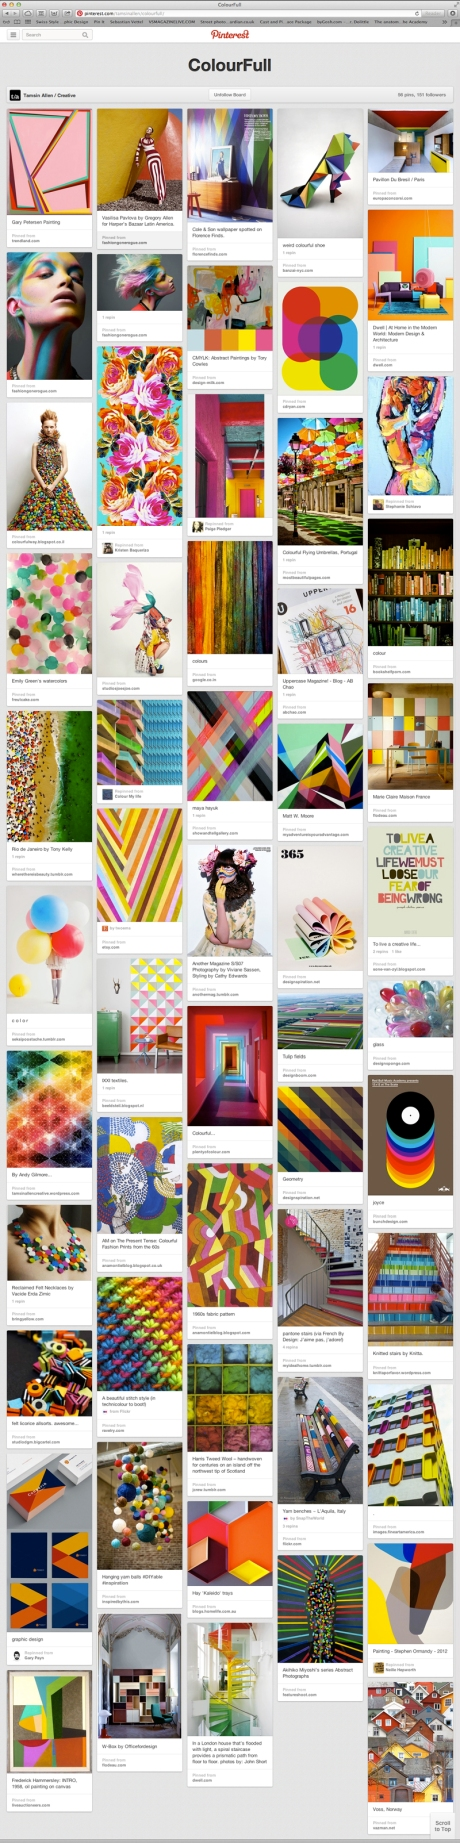 Pinterest ColourFull board